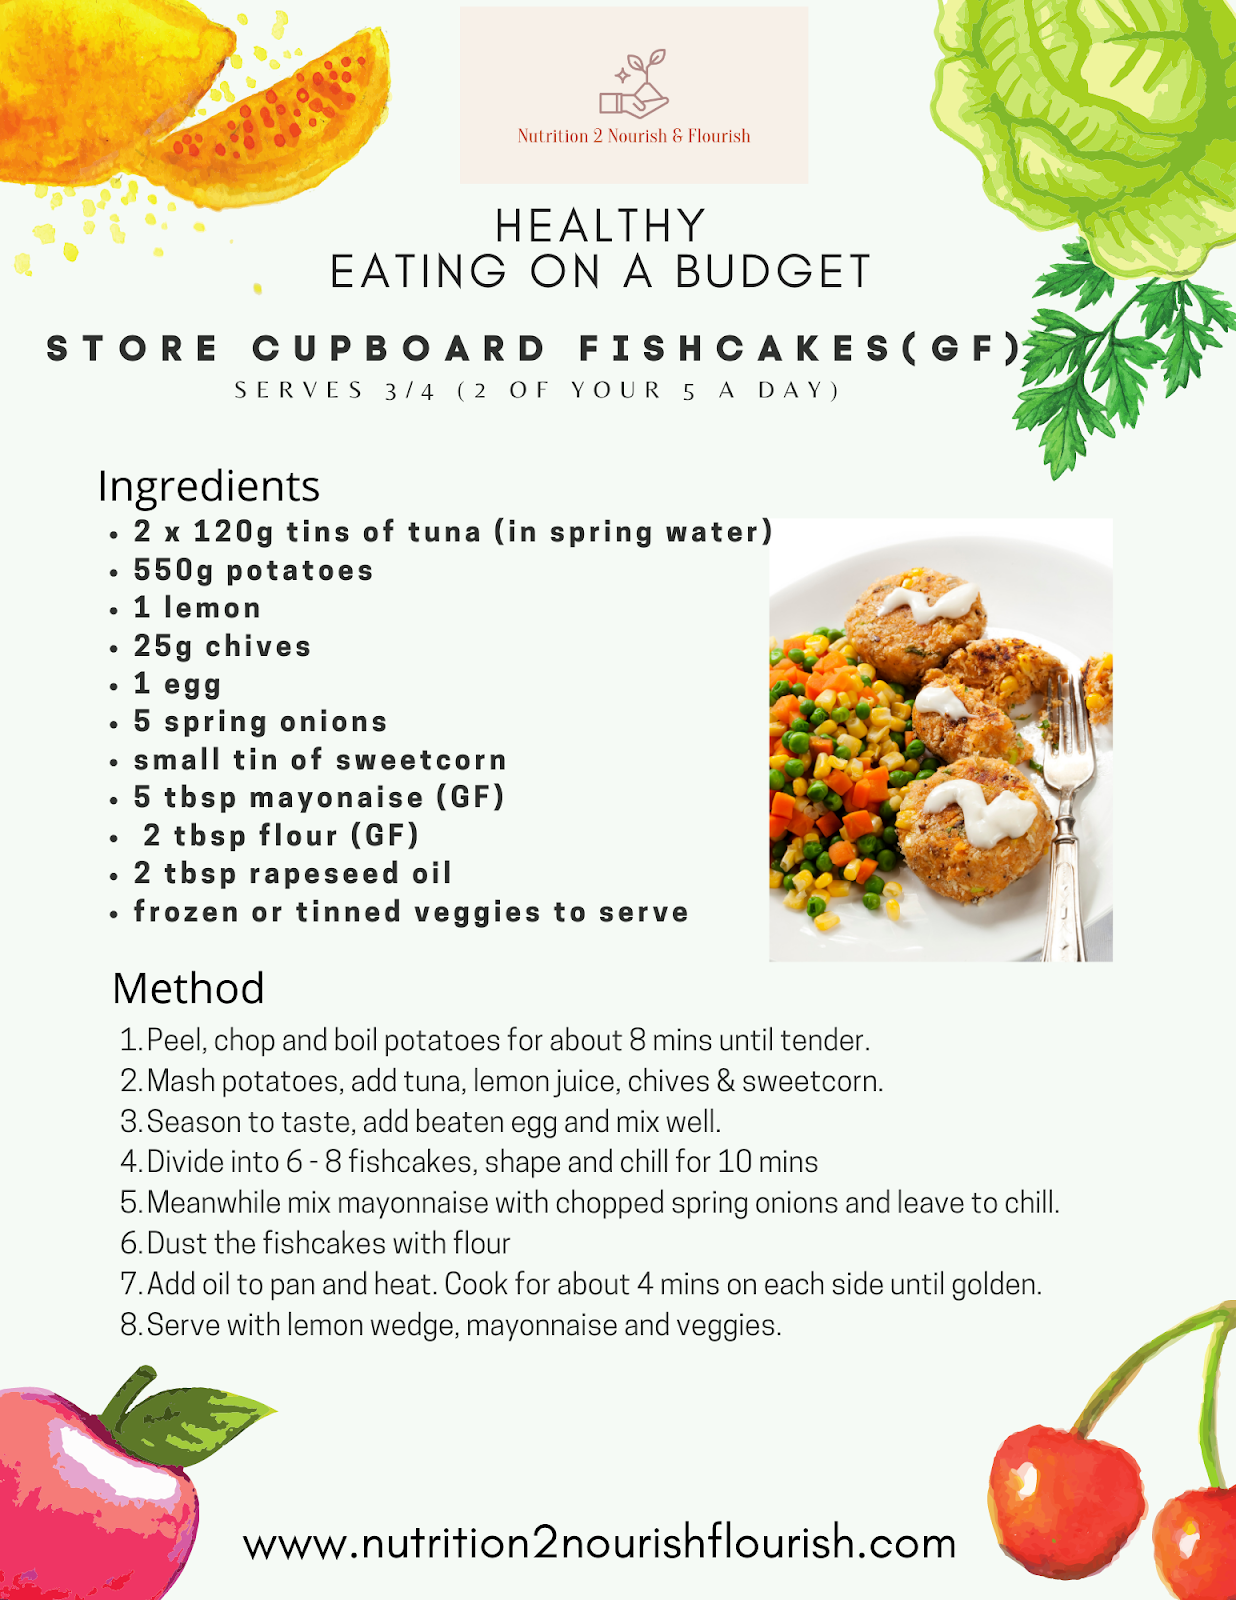 This is a recipe for store cupboard fishcakes (eat well on a budget)